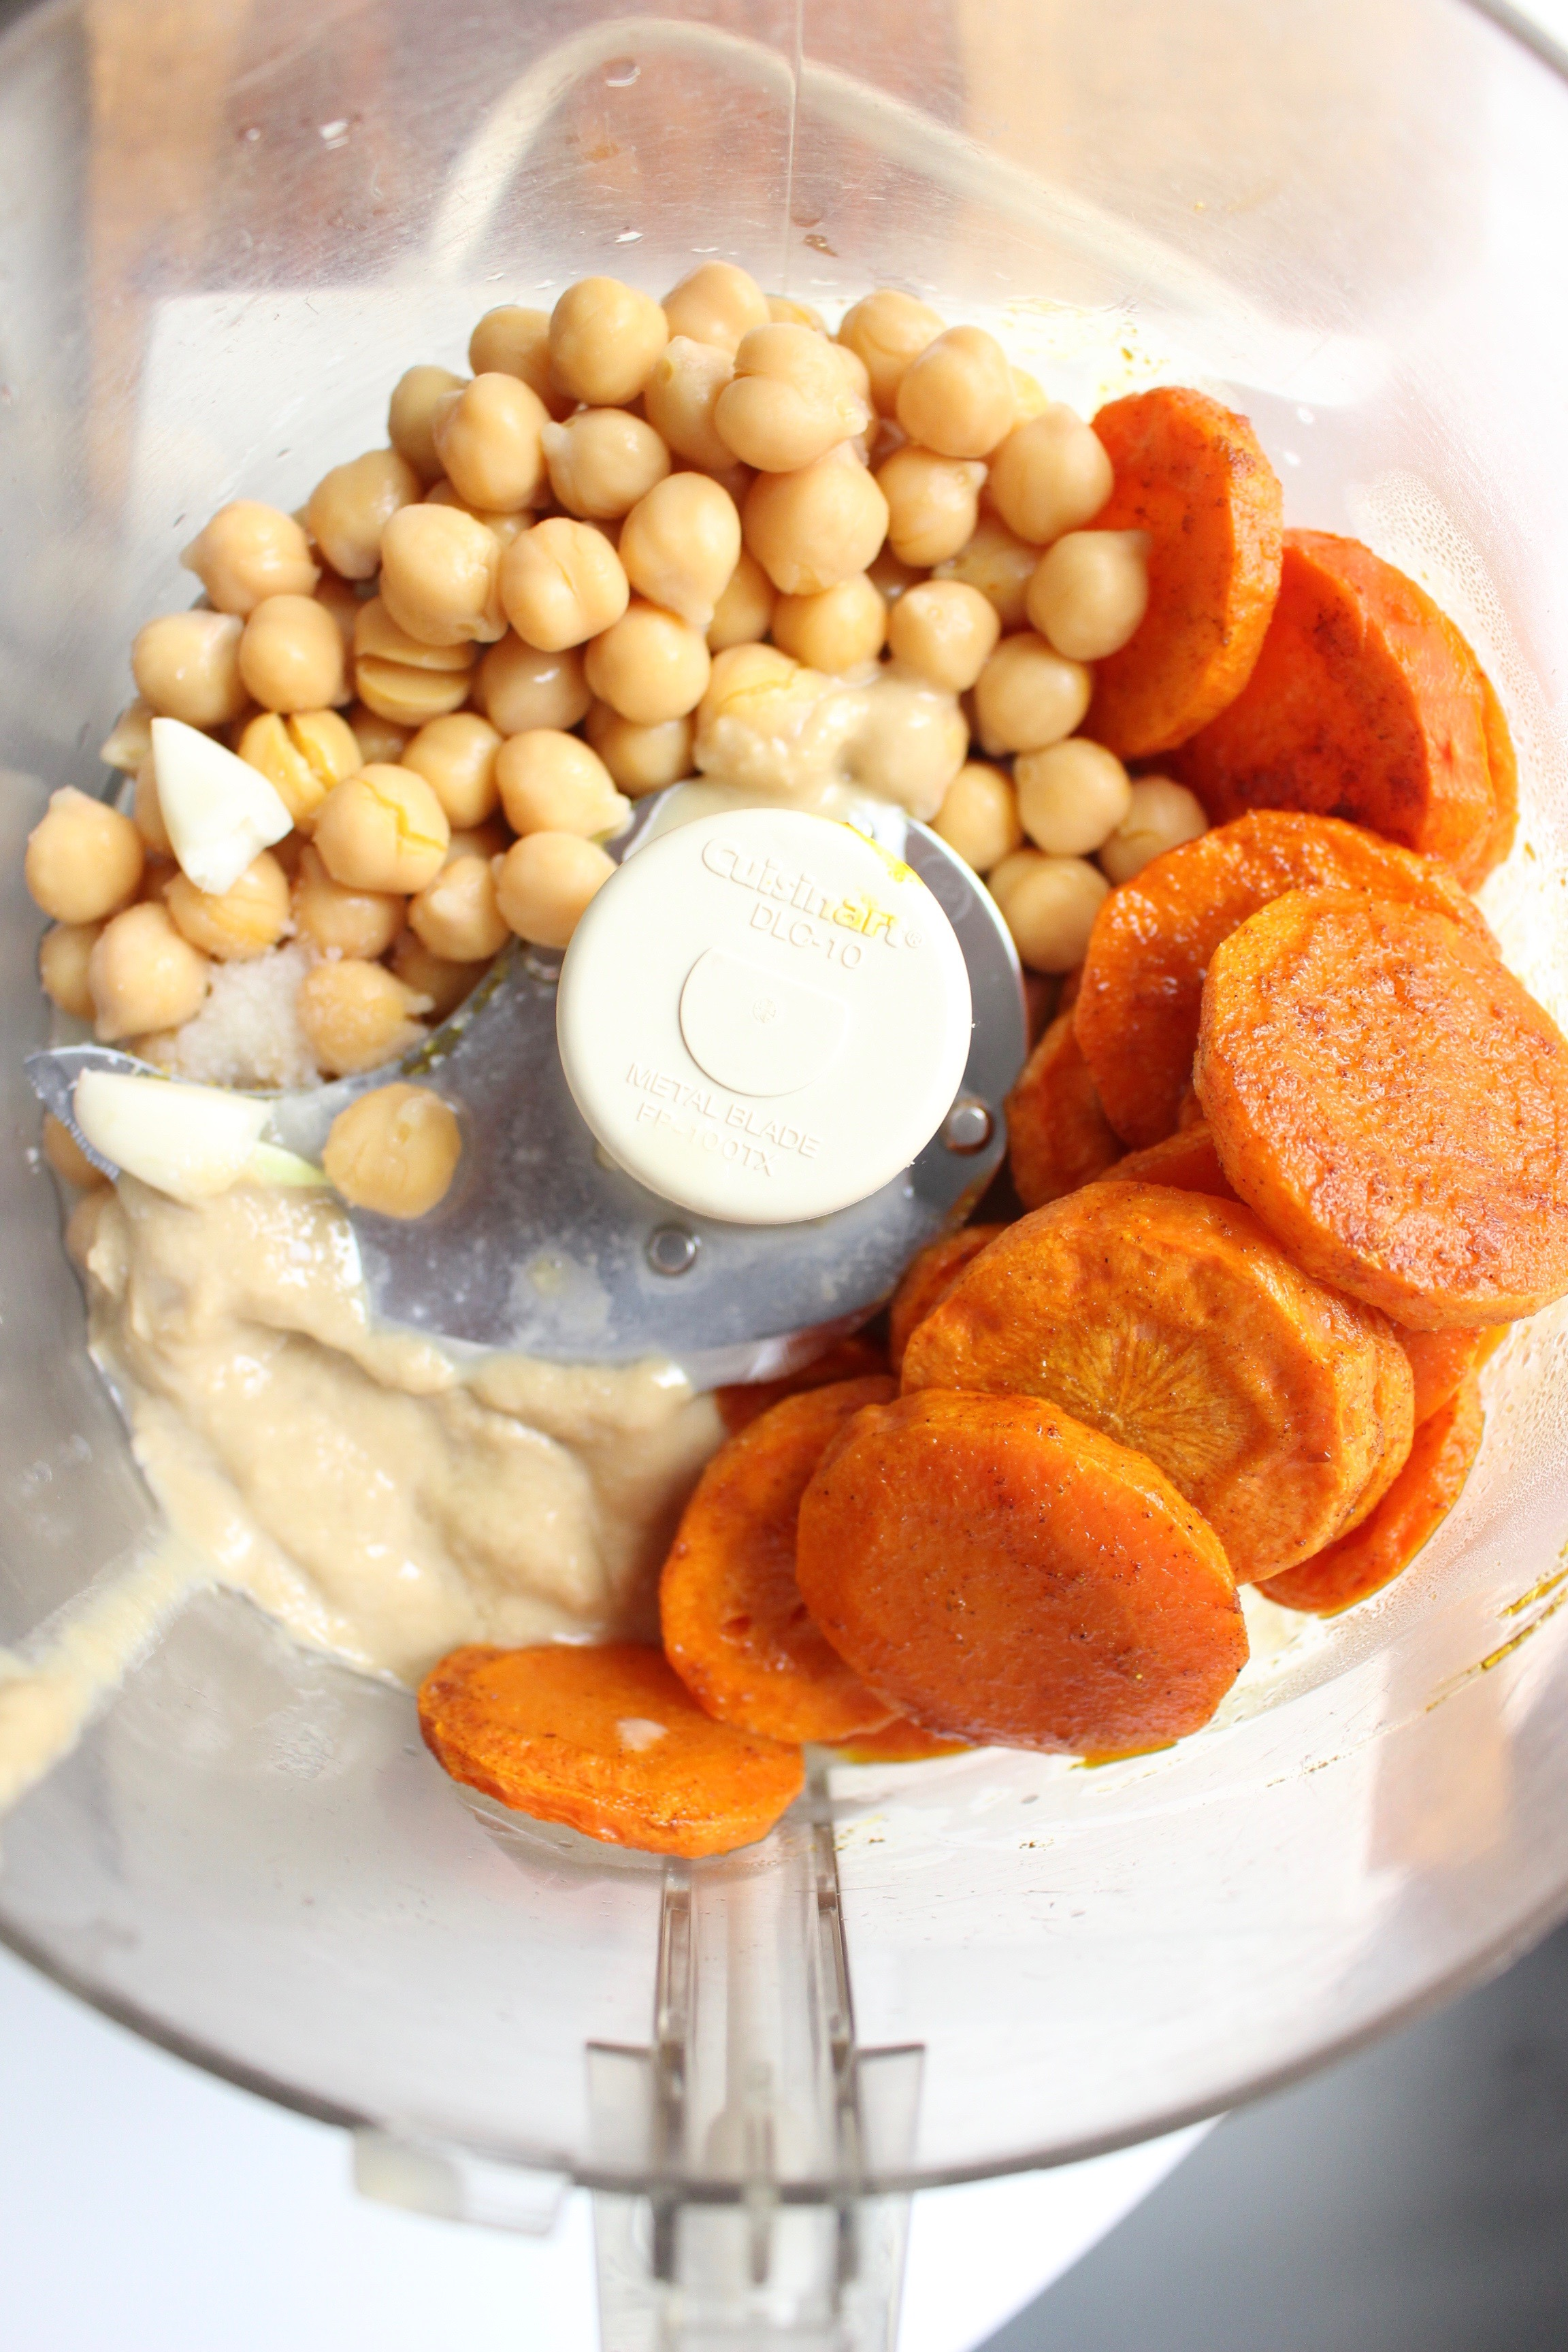 Roasted carrot hummus | Me & The Moose. Roasted carrots sweeten up this spicy, complex, EASY hummus. #meandthemoose #snackrecipes #hiddenveggies #snacks #roastedcarrots #hummus #homemadehummus #hummusrecipes